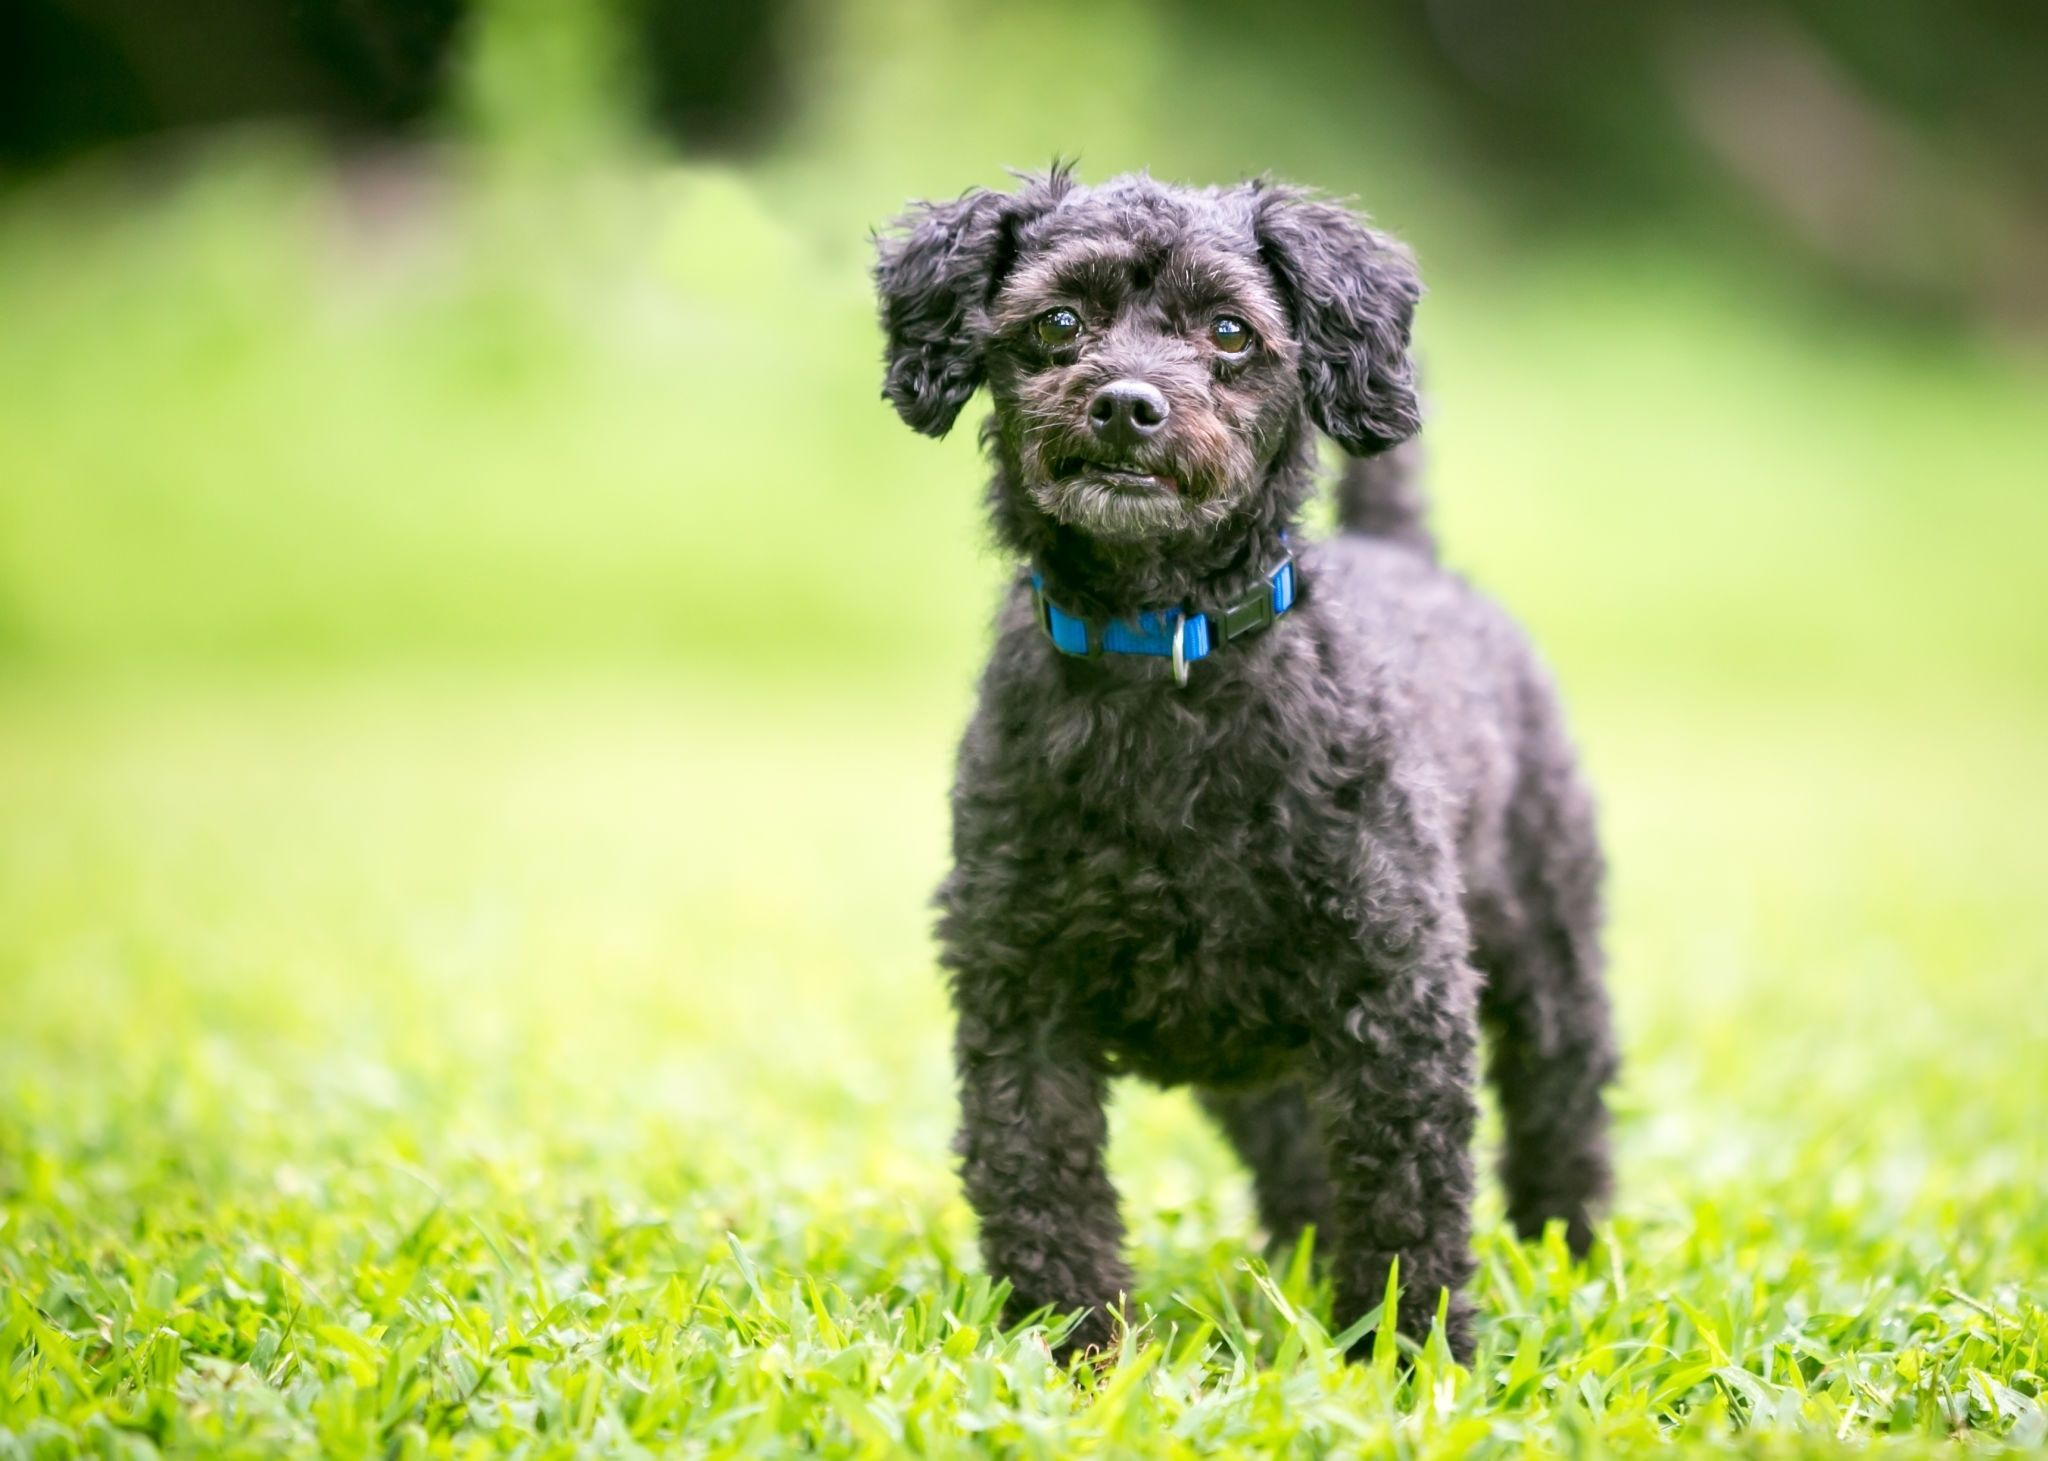 A small black Poodle mixed